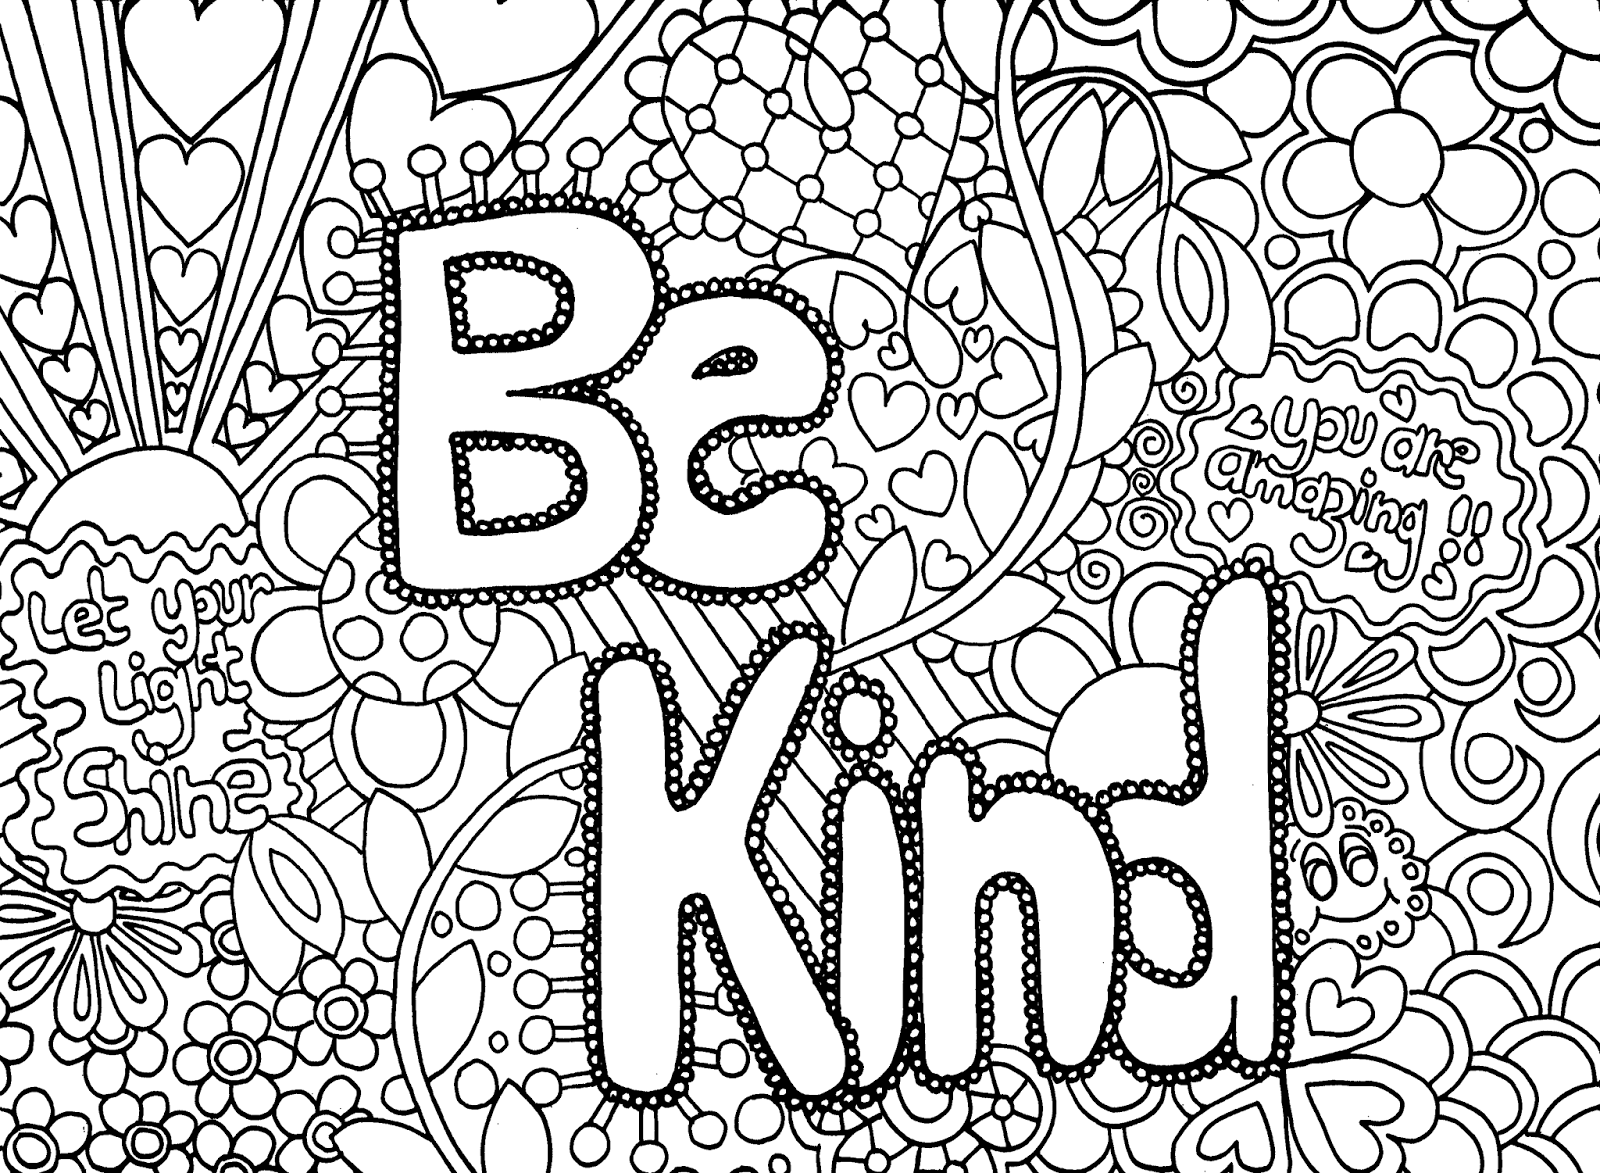 Colouring sheets hard - Hard Coloring Pages For Adults